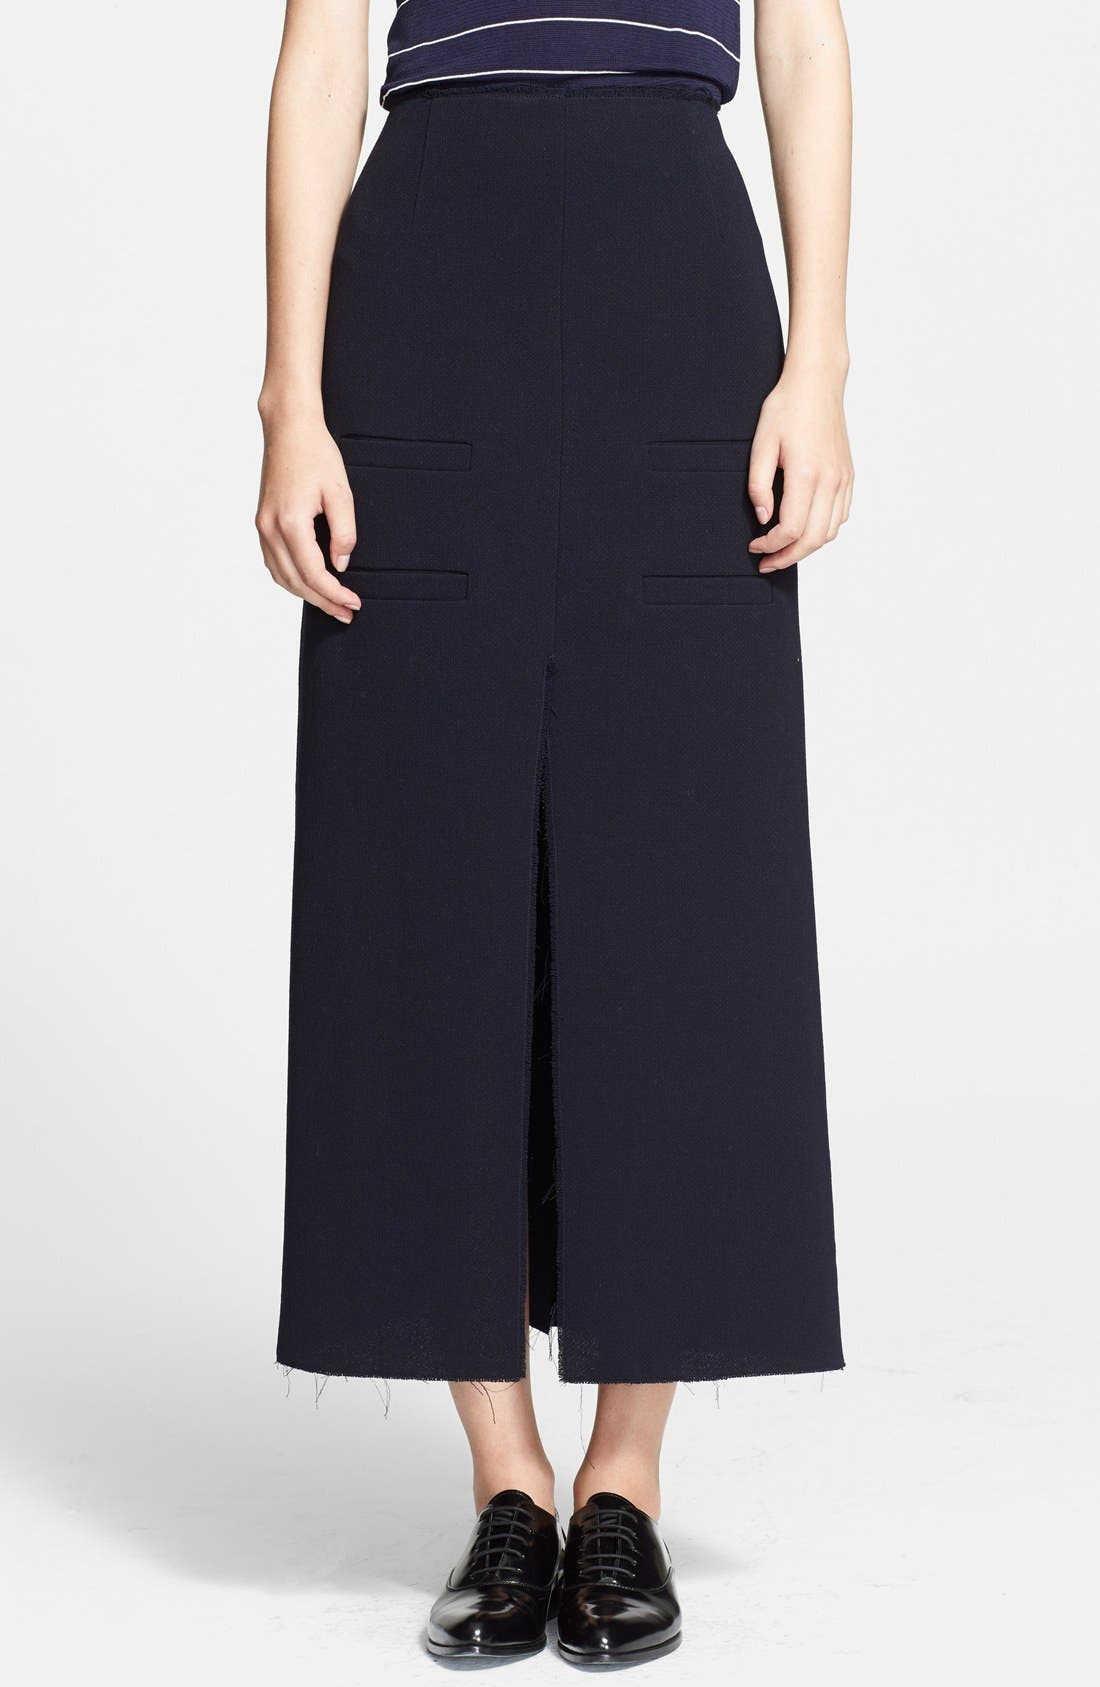 Main Image - J.W.ANDERSON Stretch Crepe Midi Skirt